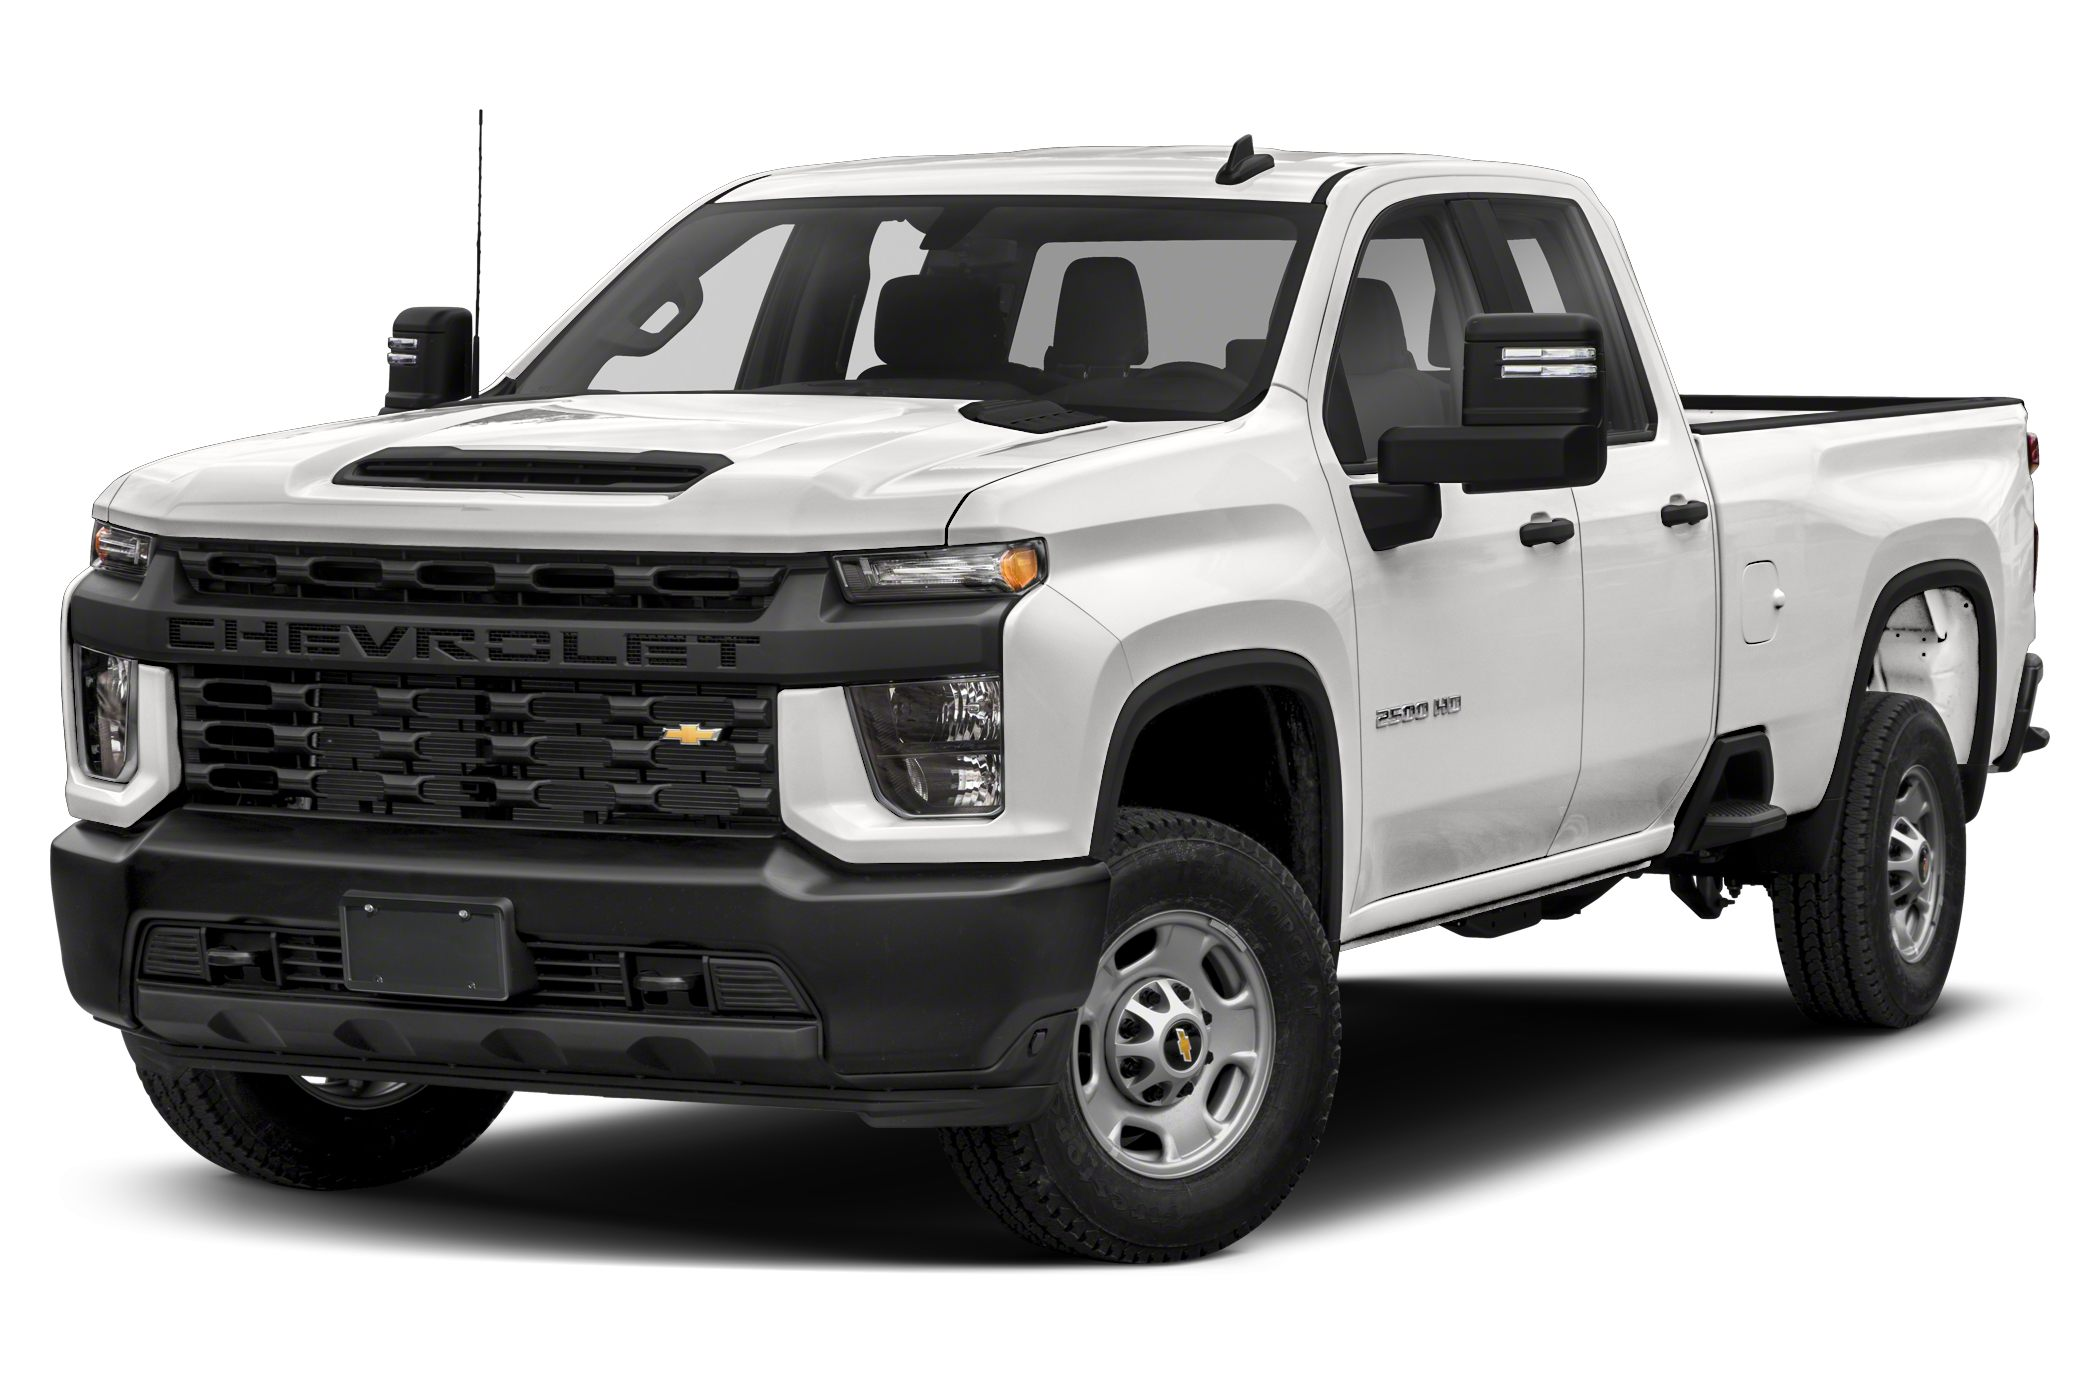 2020 Chevrolet Silverado 2500hd Ltz 4x4 Double Cab 8 Ft Box 162 5 In Wb Pricing And Options